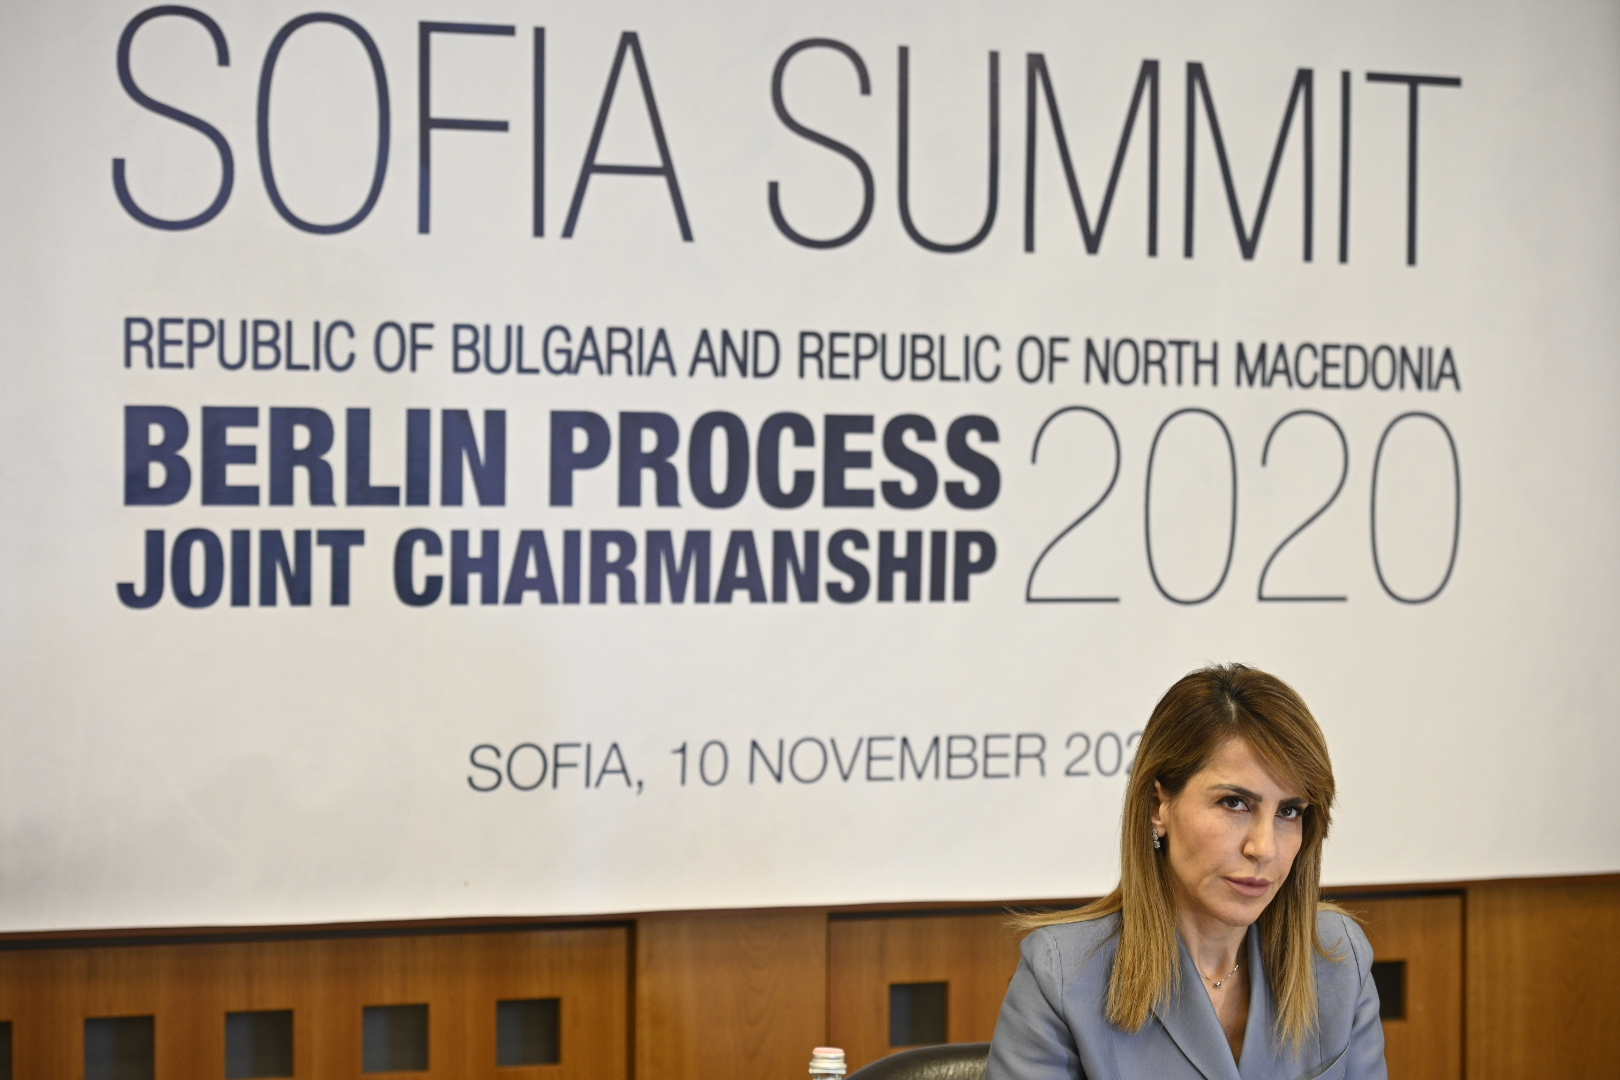 Speech of the Secretary General at the Western Balkans Sofia Summit on 10 November 2020